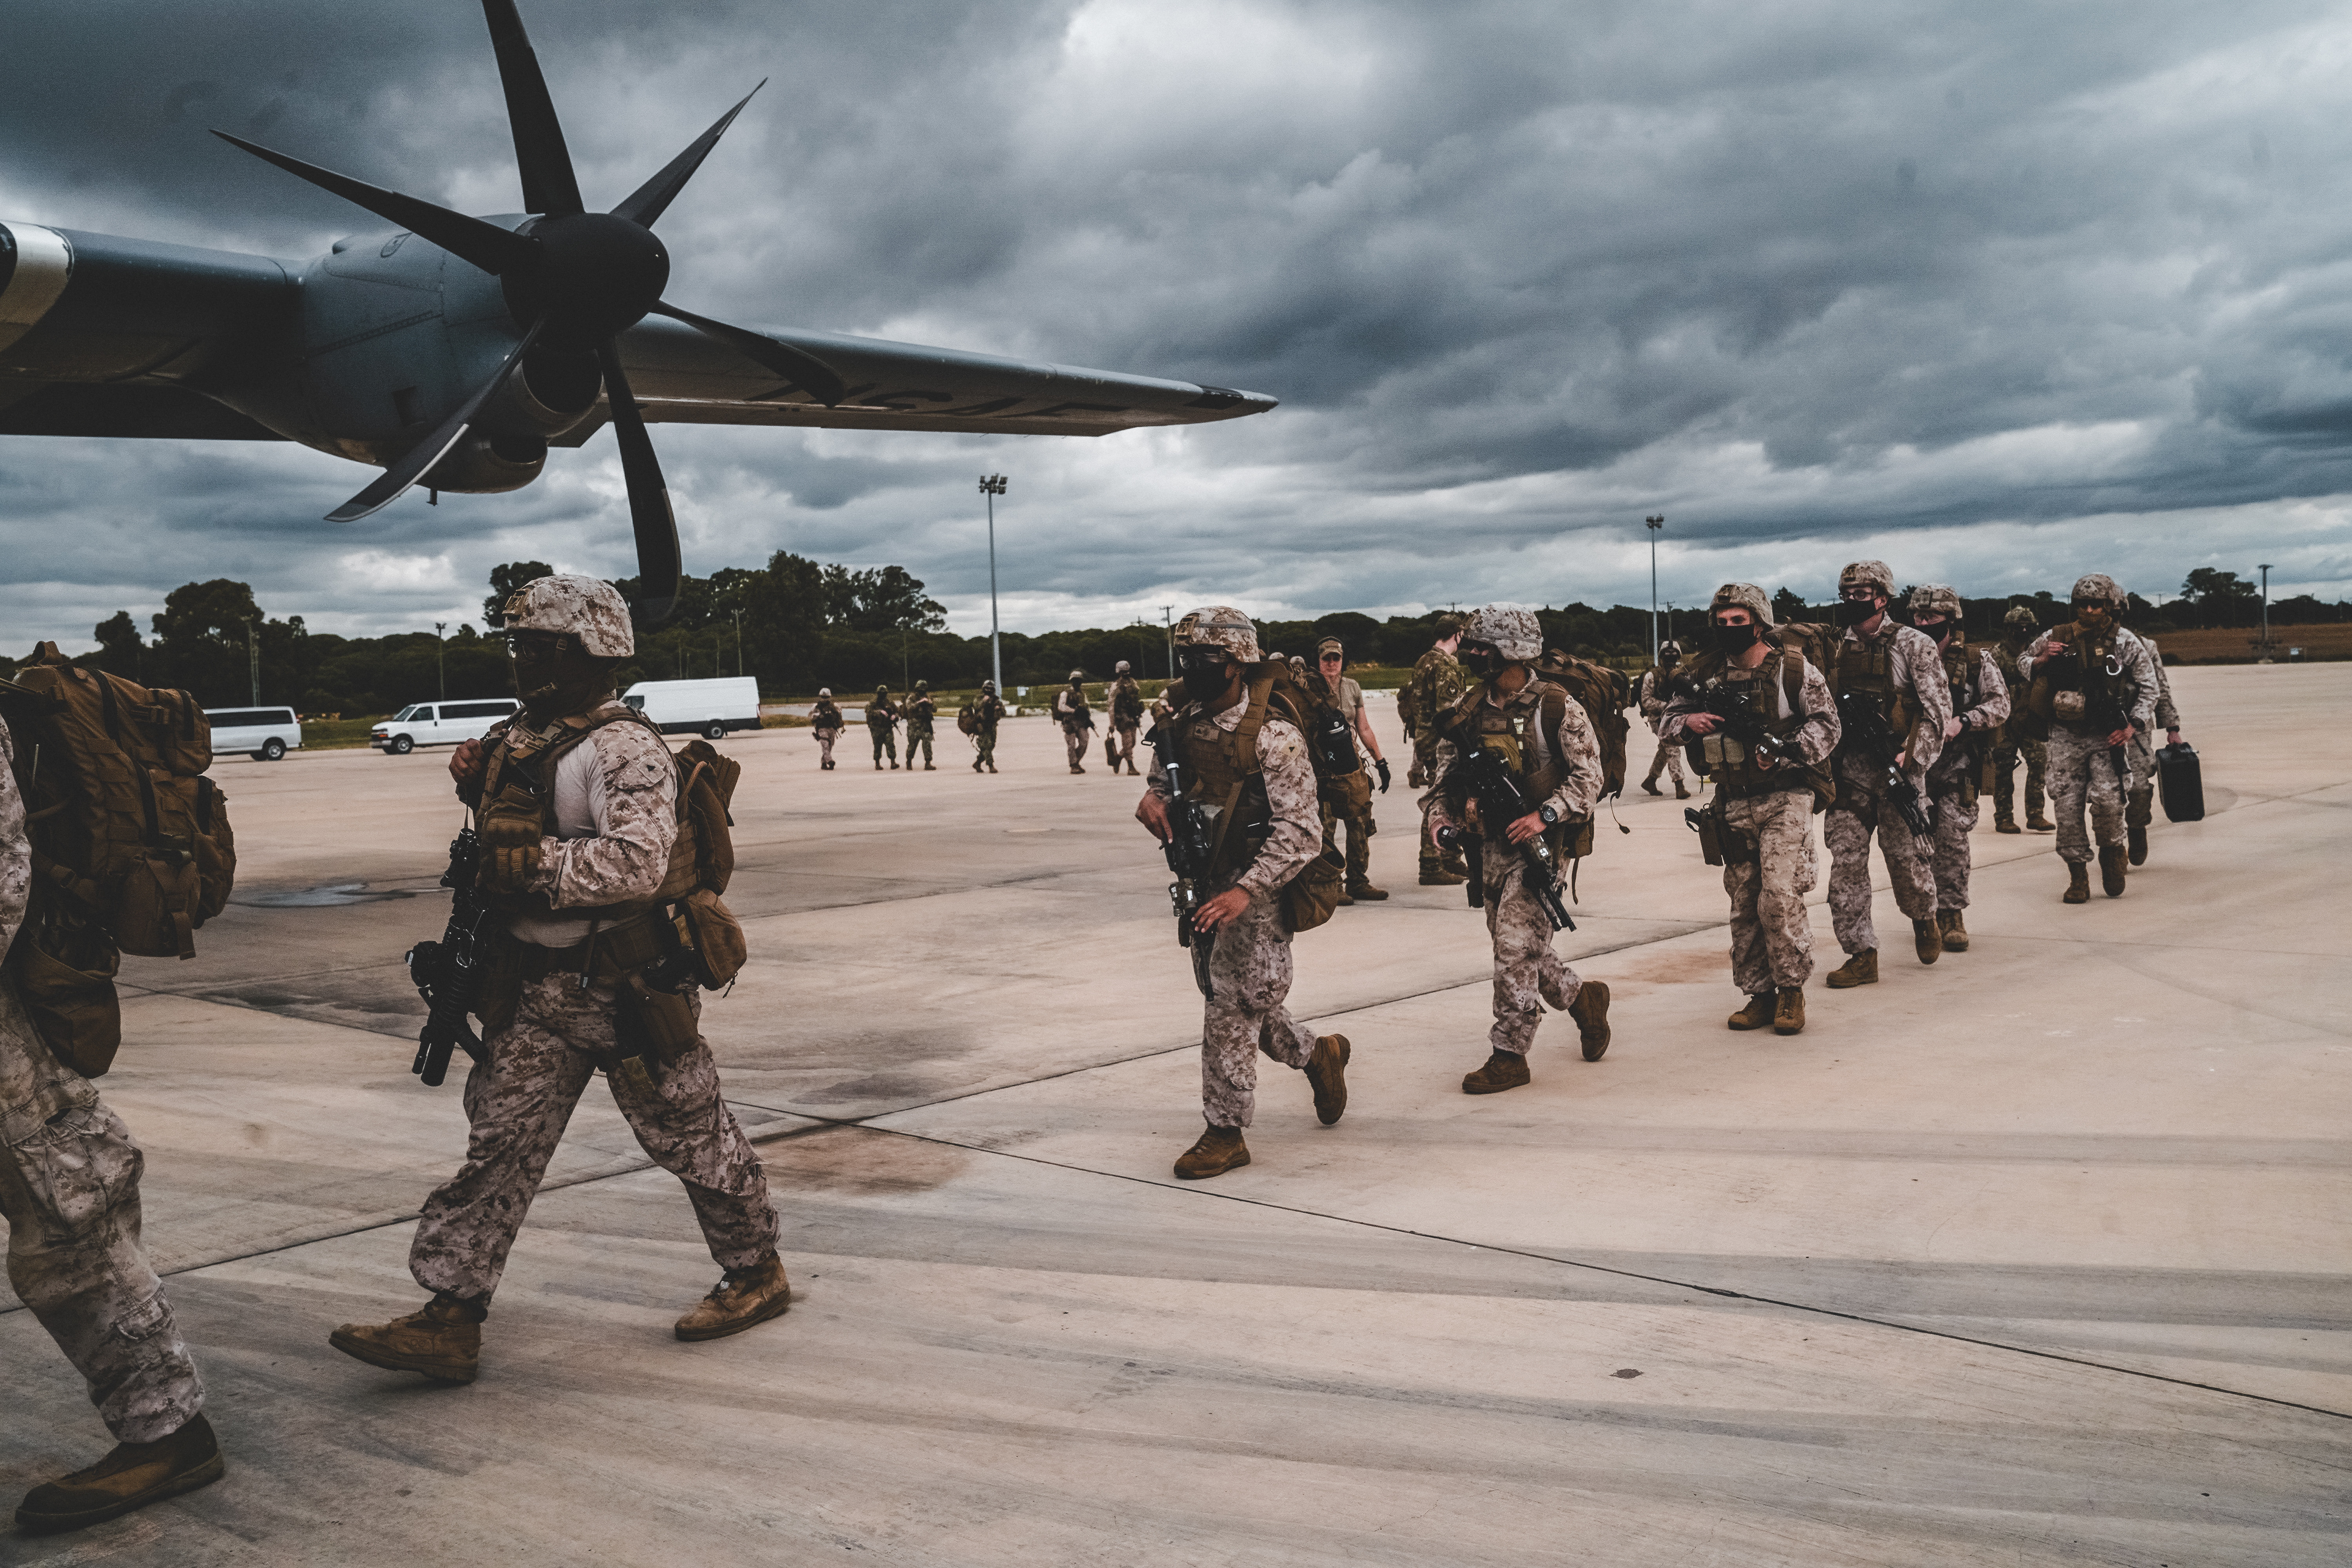 "U.S. Marines with Fleet Anti-terrorism Security Company, Europe (FASTEUR), U.S. Navy Sailors Explosive Ordnance Disposal Mobile Unit 8 (EODMU 8), and Naval Construction Forces, the ""Seabees"", Commander, Task Force - 68 (CTF-68) personnel board a U.S. Air Force C-130 in Rota, Spain for a joint forces readiness exercise in Mali, Africa."